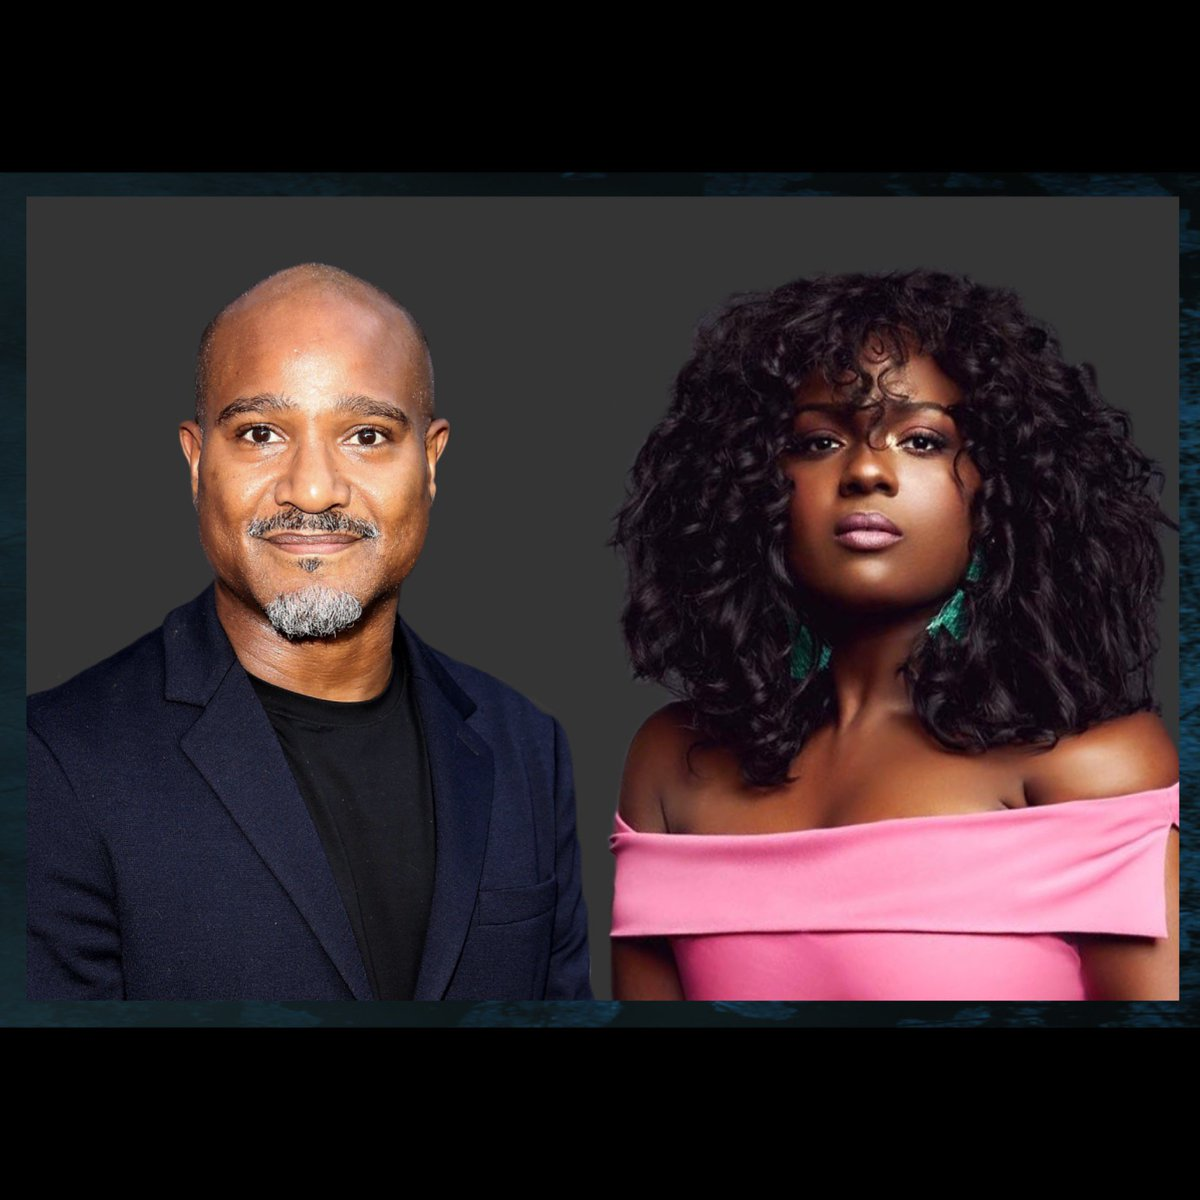 Don't forget there's only ONE #TalkingDead left this year and it's next Sunday! Tune in to chat with Seth Gilliam AKA Father Gabriel, Superfan @DeborahJwinans and a SURPRISE GUEST!!! Got questions? You know where to send them!